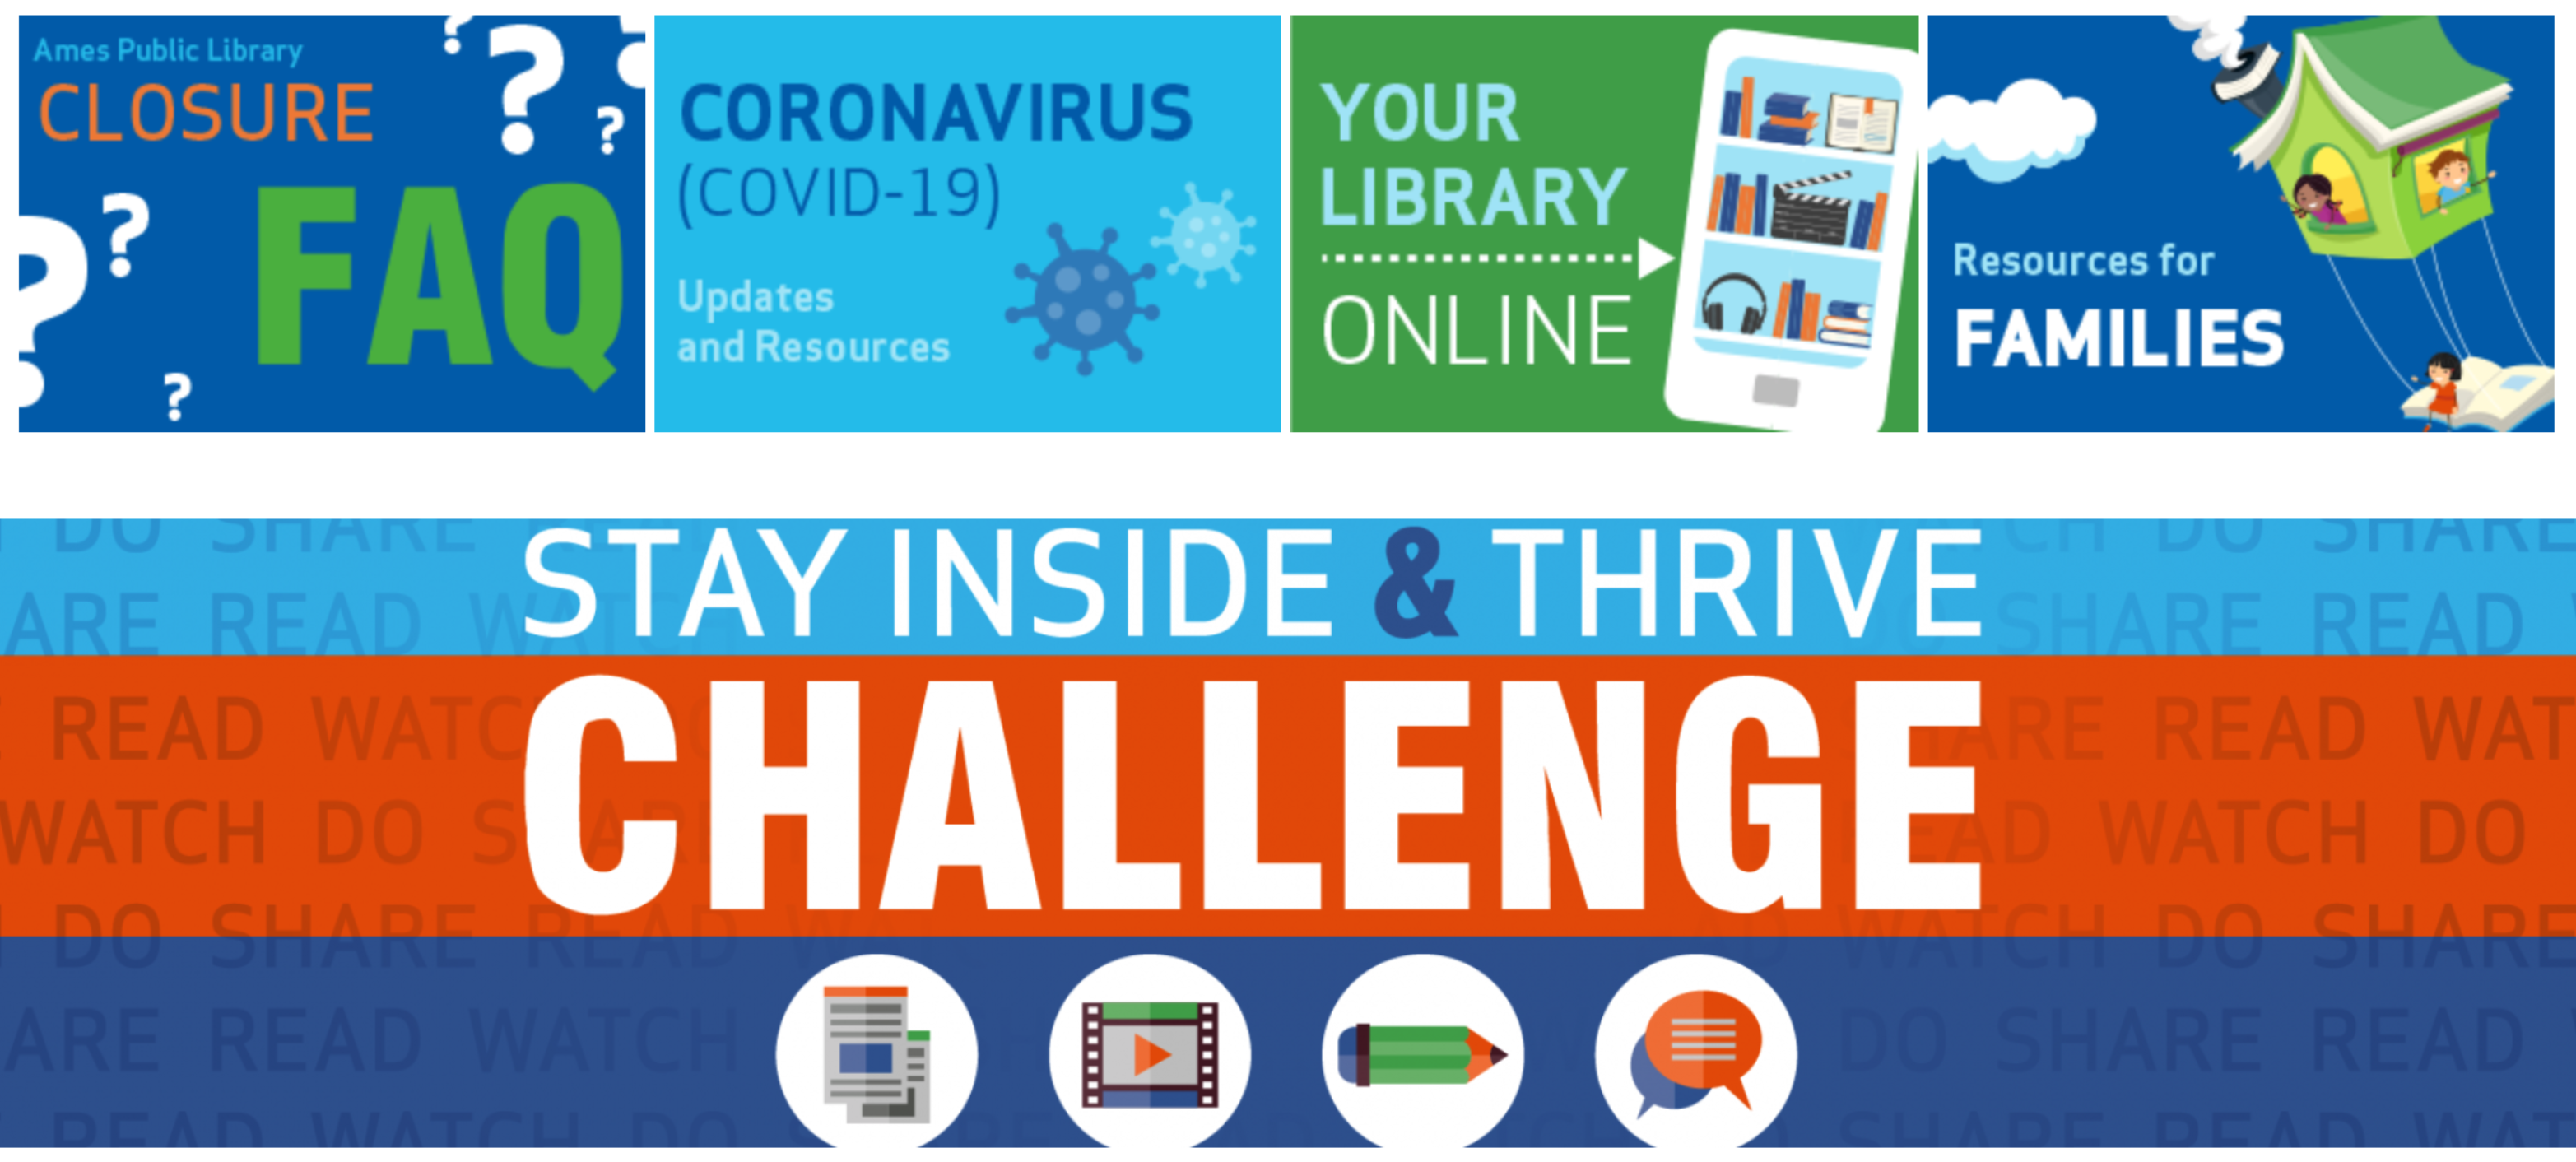 Ames Public Library's Stay Inside and Thrive Challenge